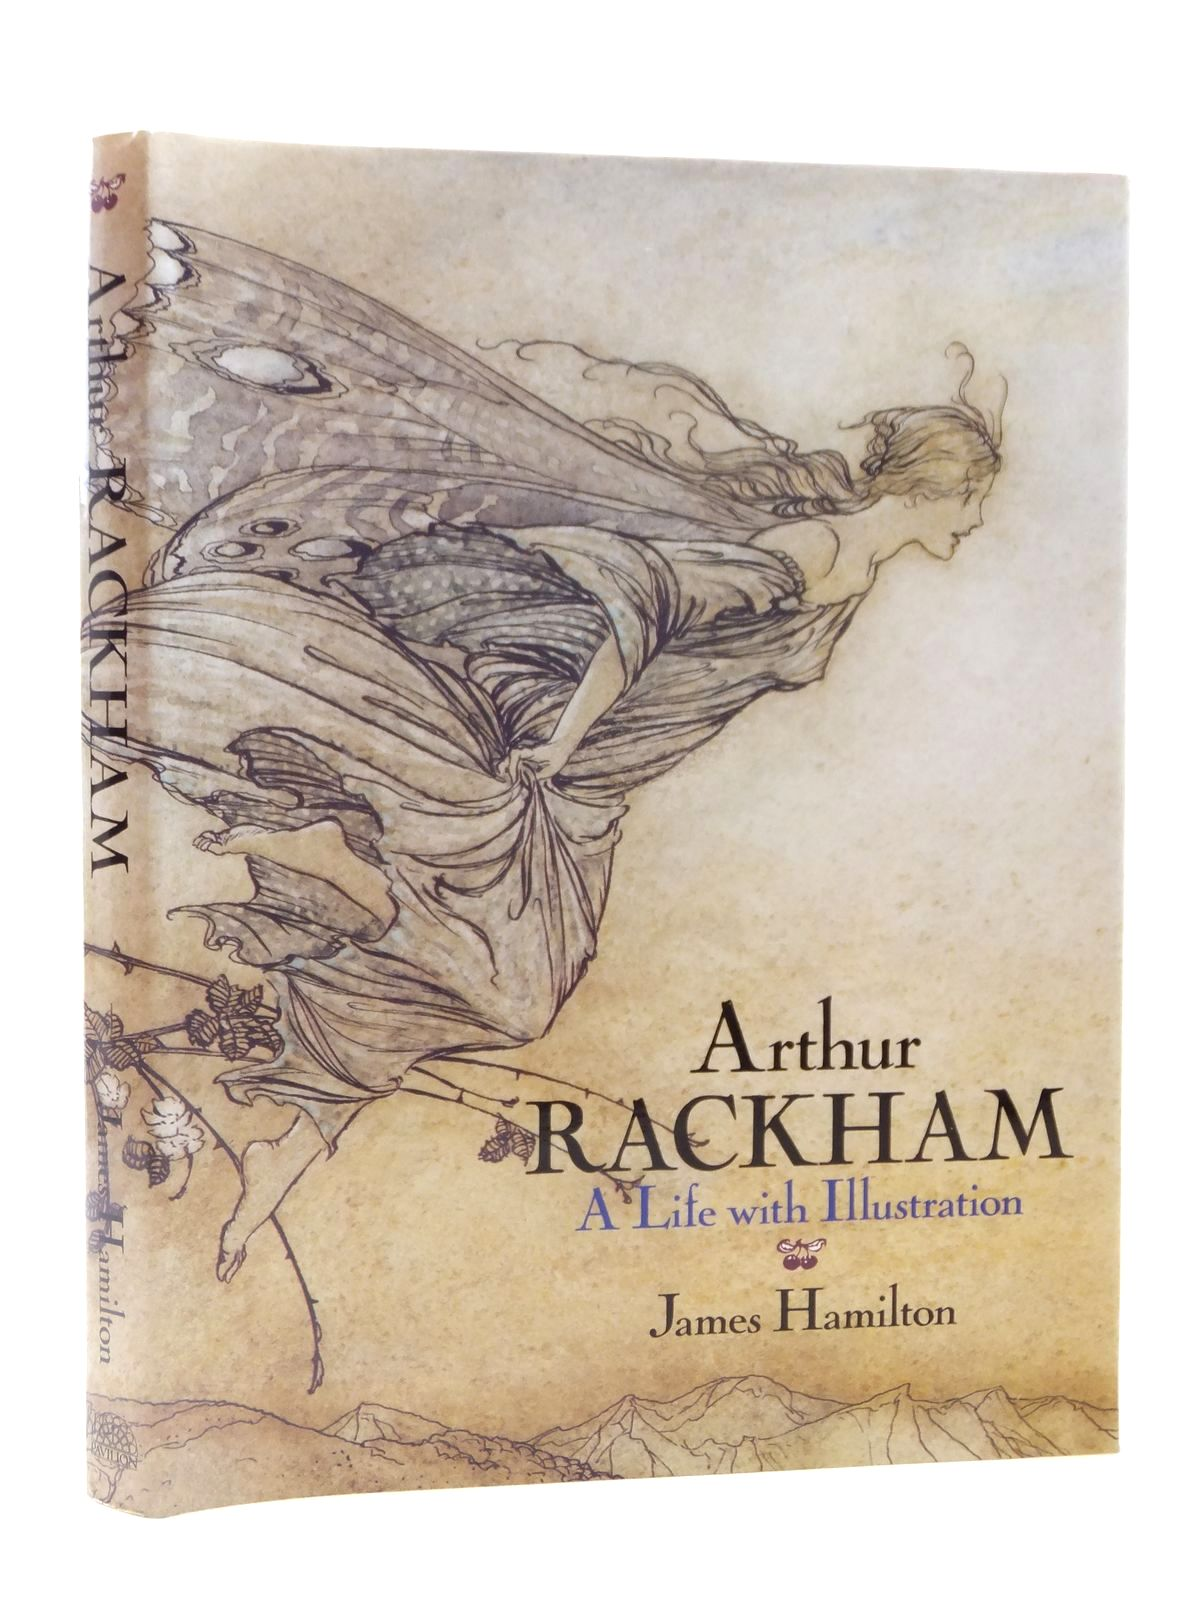 Photo of ARTHUR RACKHAM - A LIFE WITH ILLUSTRATION written by Hamilton, James illustrated by Rackham, Arthur published by Pavilion Books Ltd. (STOCK CODE: 1608928)  for sale by Stella & Rose's Books